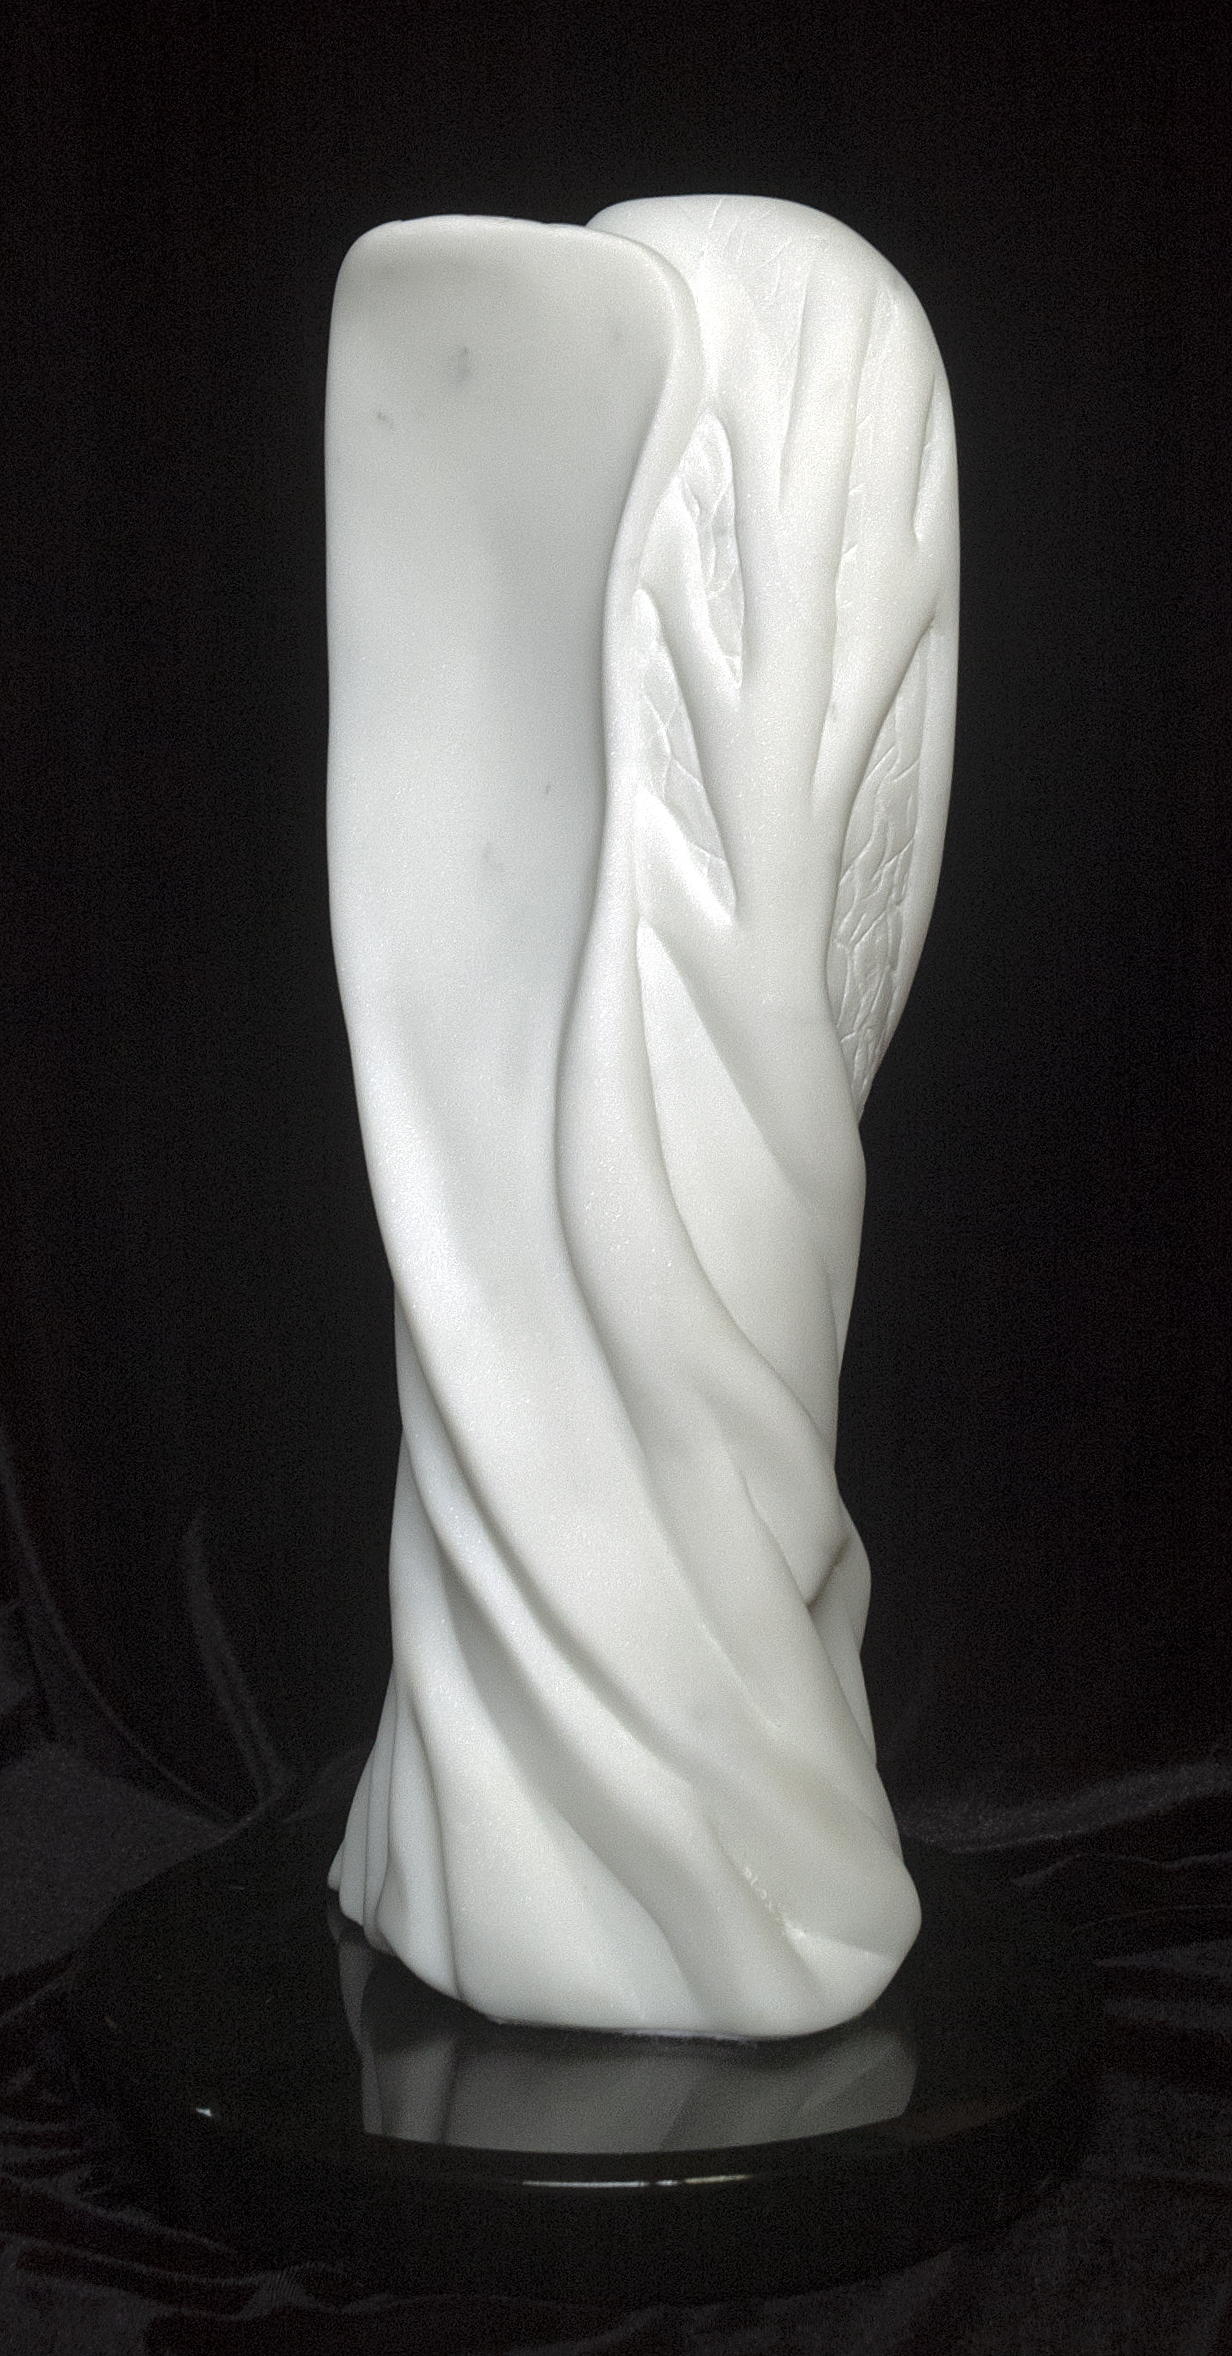 Transfiguration 2012 Carrara Marble and Black Onyx 18.5in tall 2nd